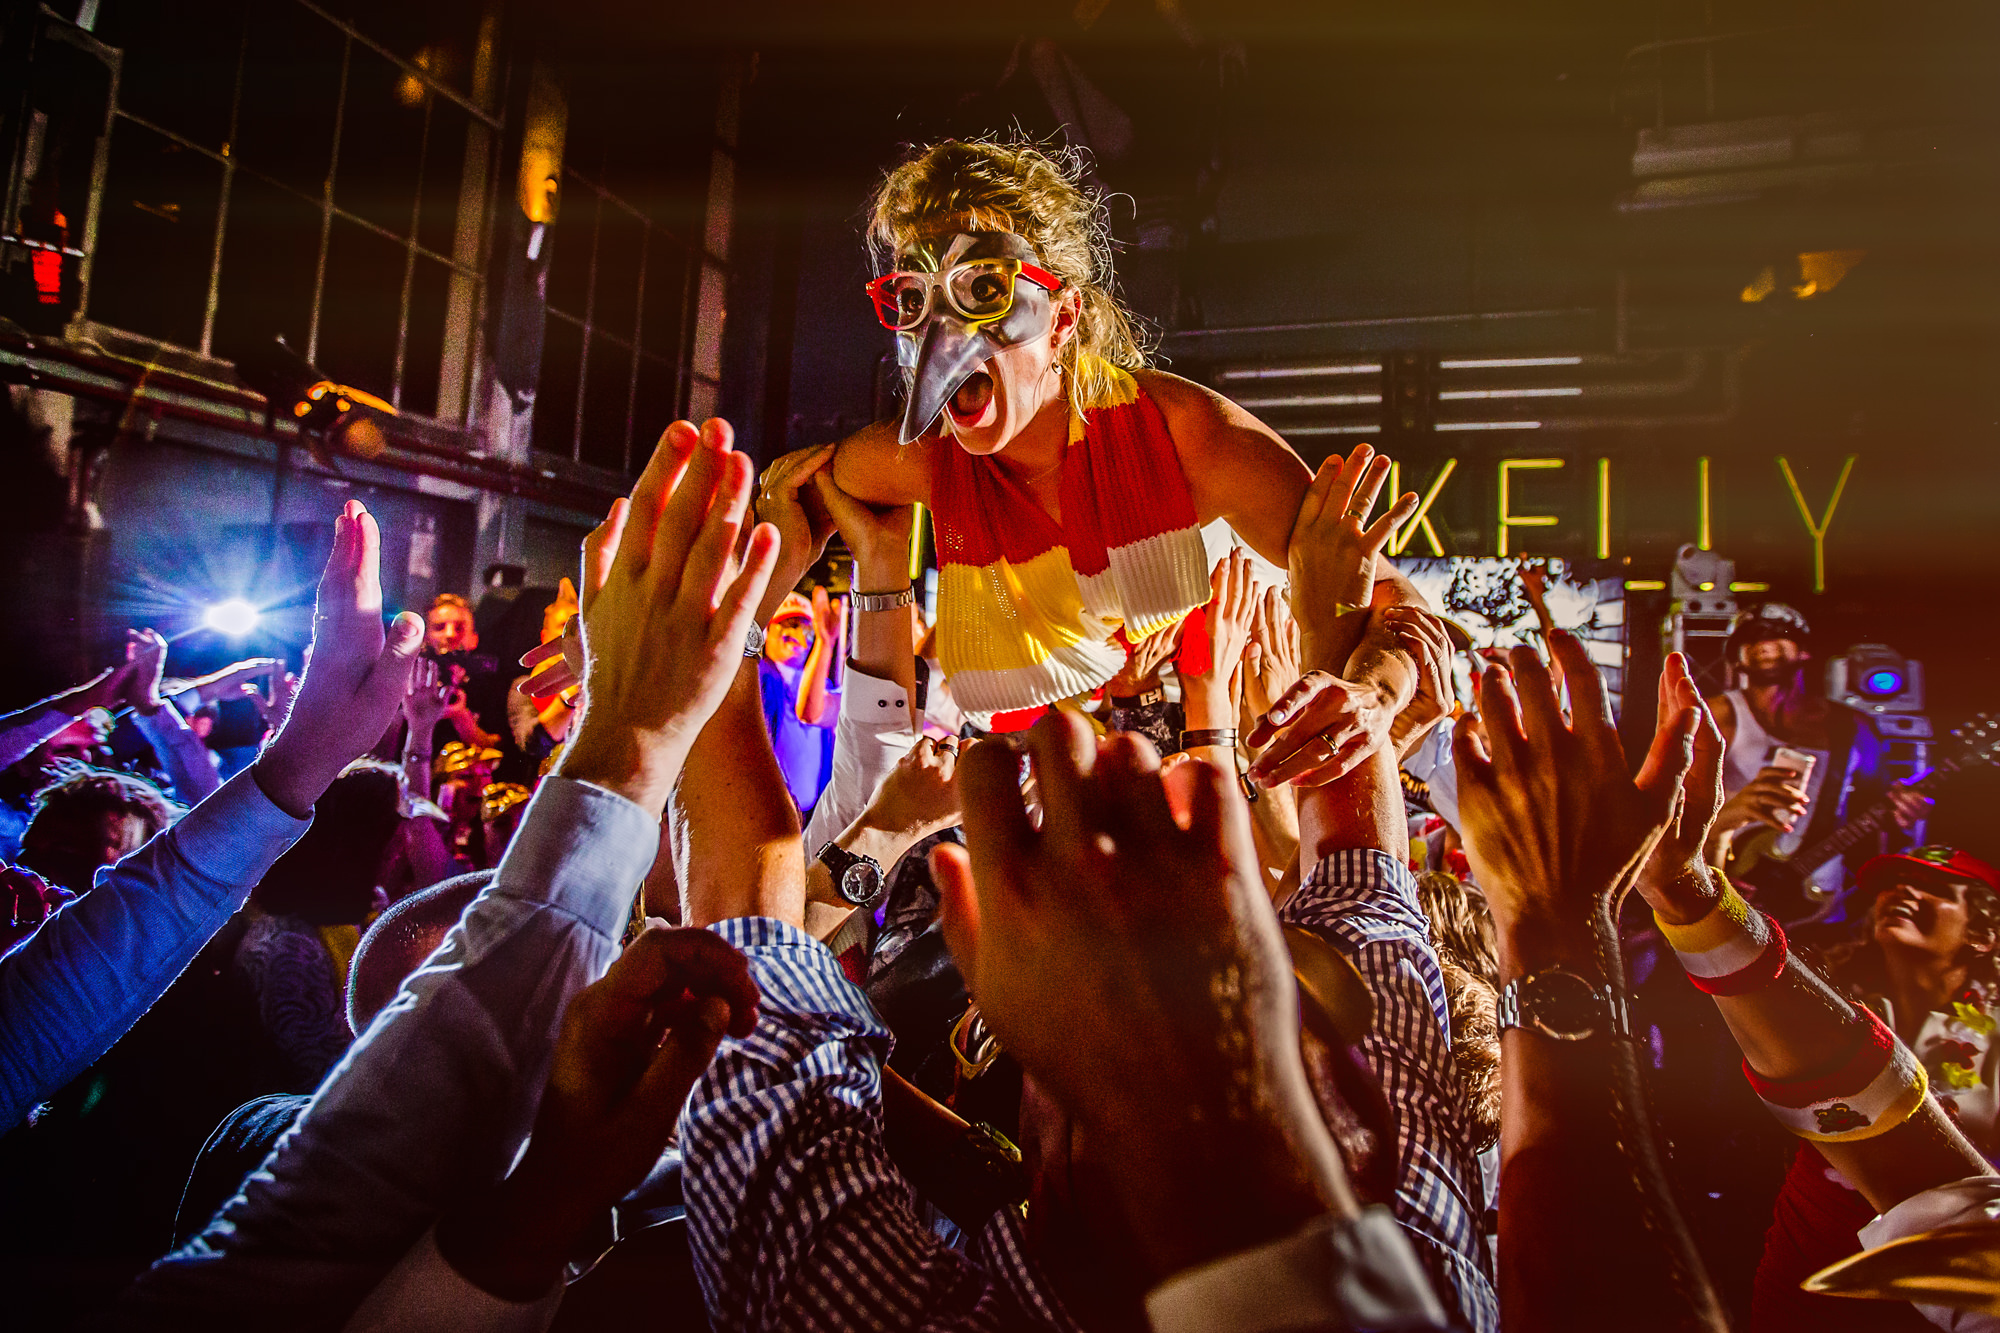 Guest in mosh pit wearing venetian mask by Eppel Photography Netherlands